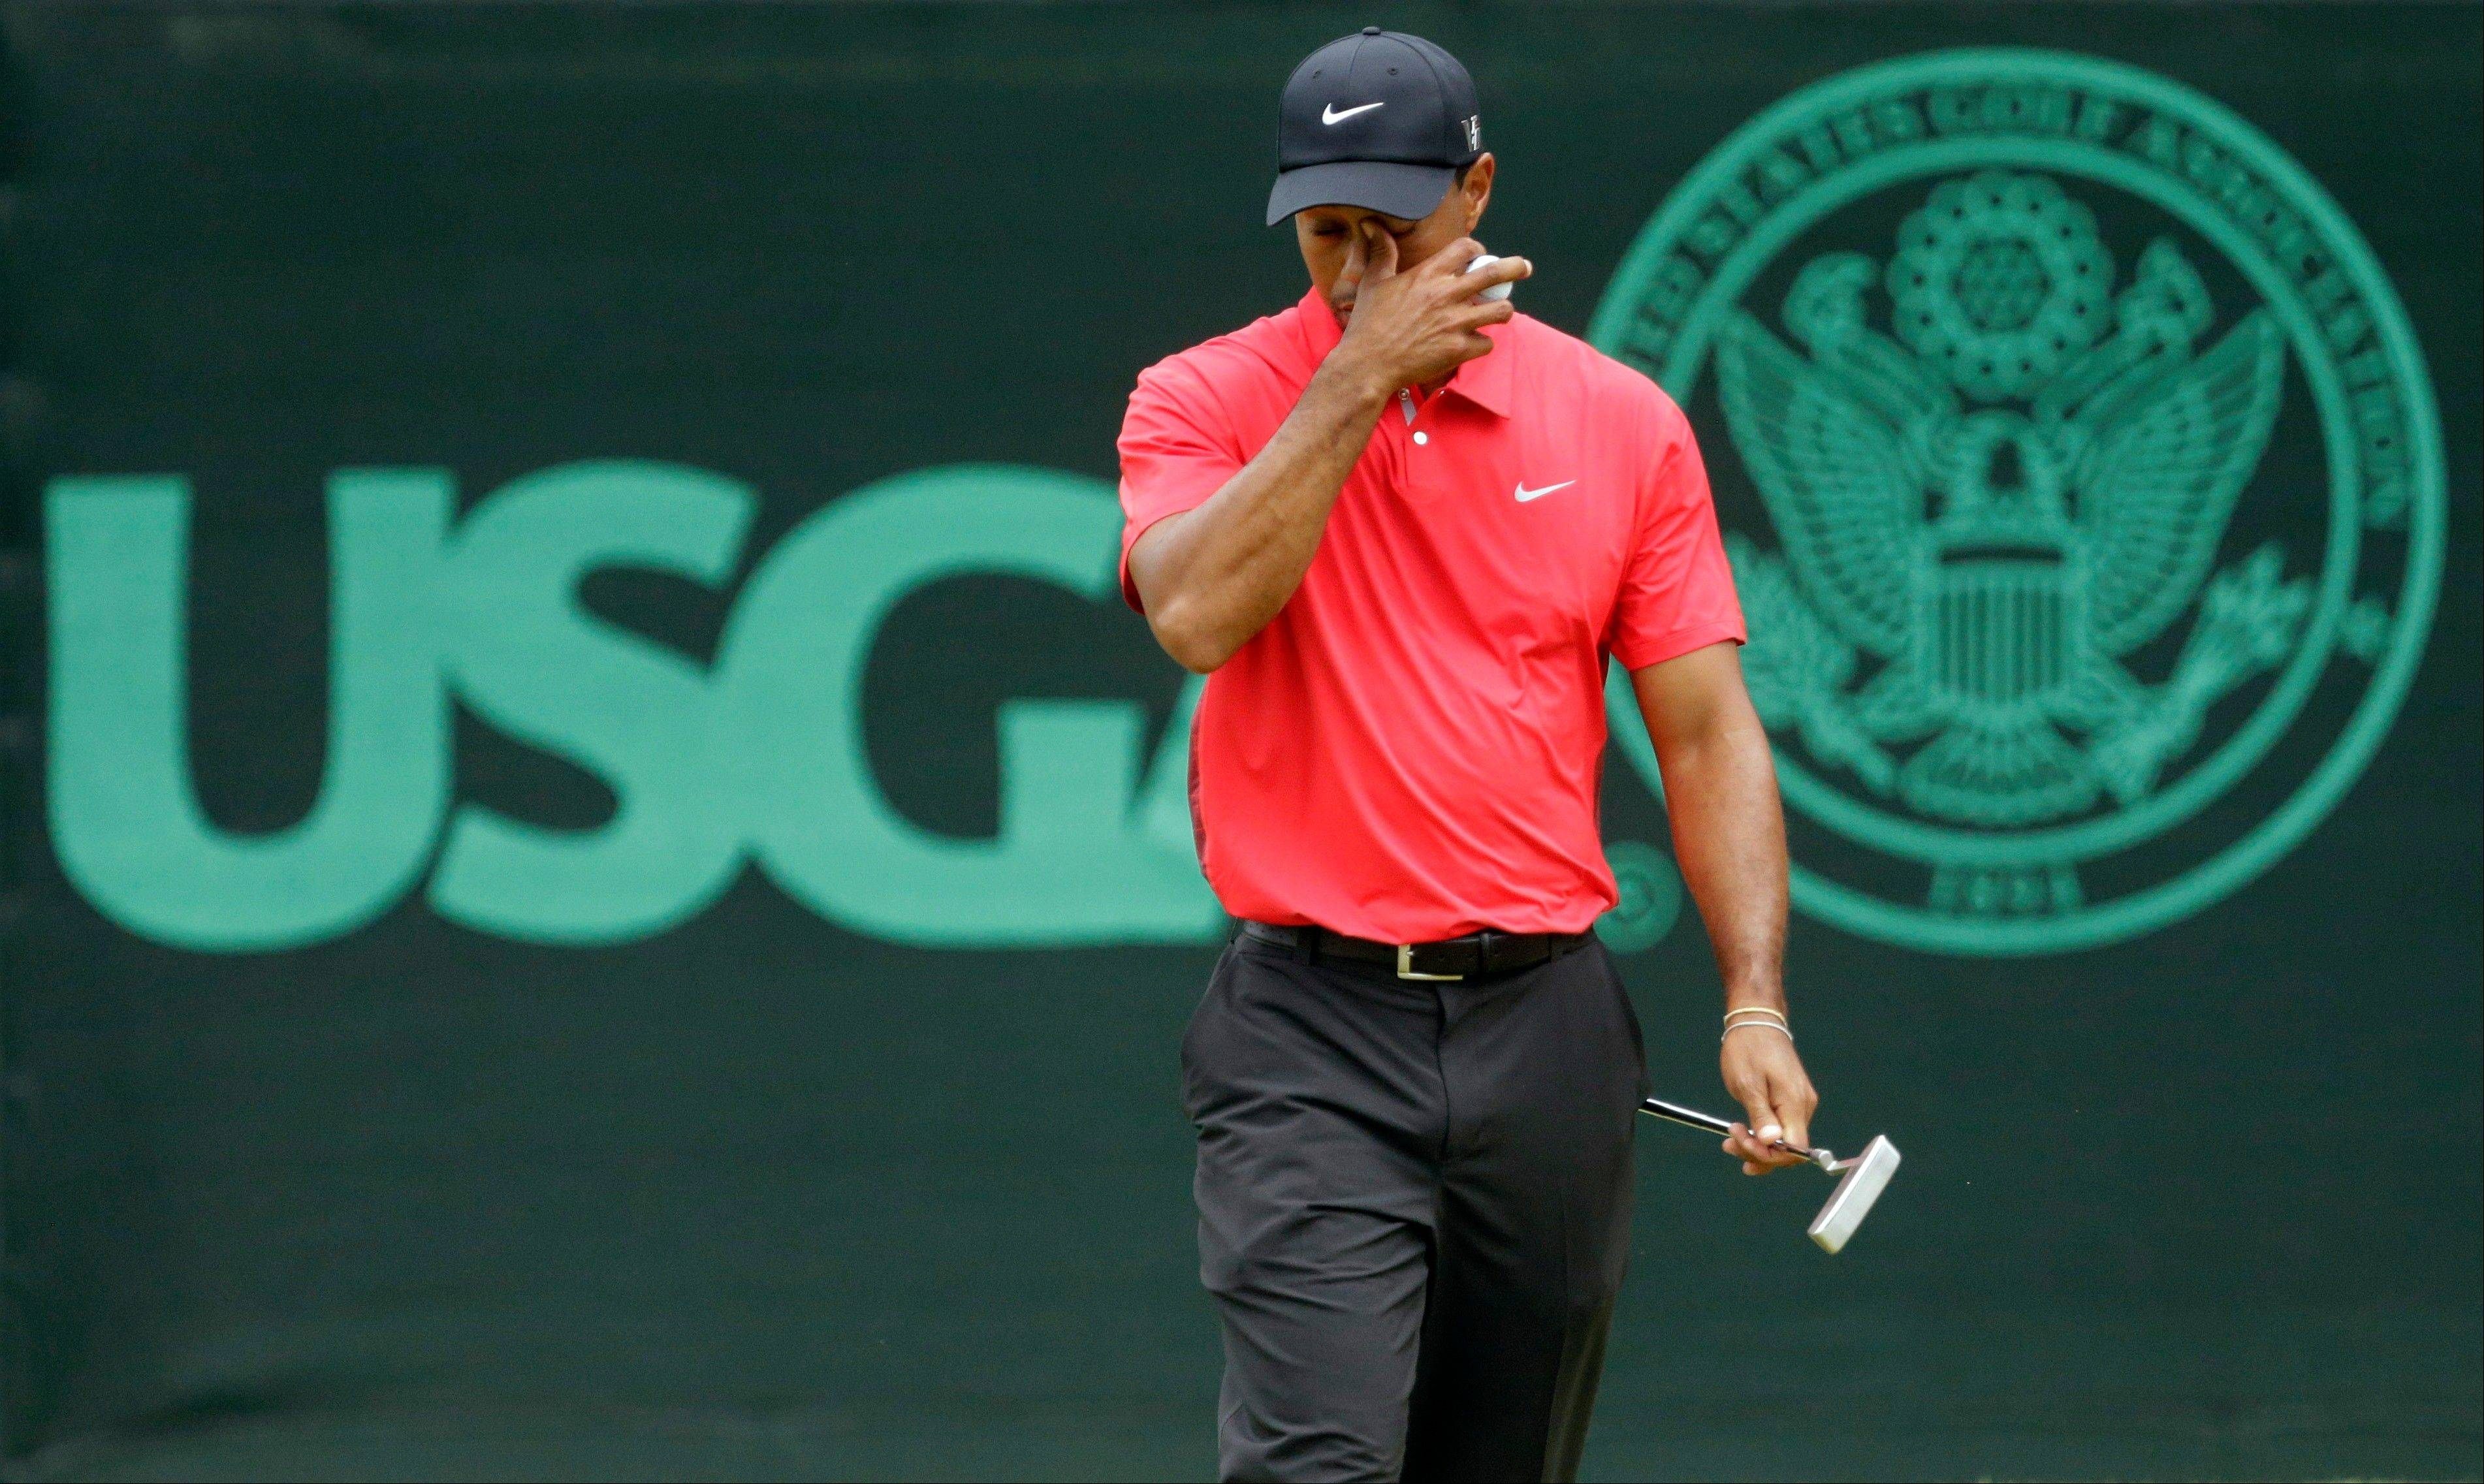 After playing in the U.S. Open, Tiger Woods was told by his doctors to rest his sore left elbow for three weeks. Woods expects to return in time to play in the British Open.